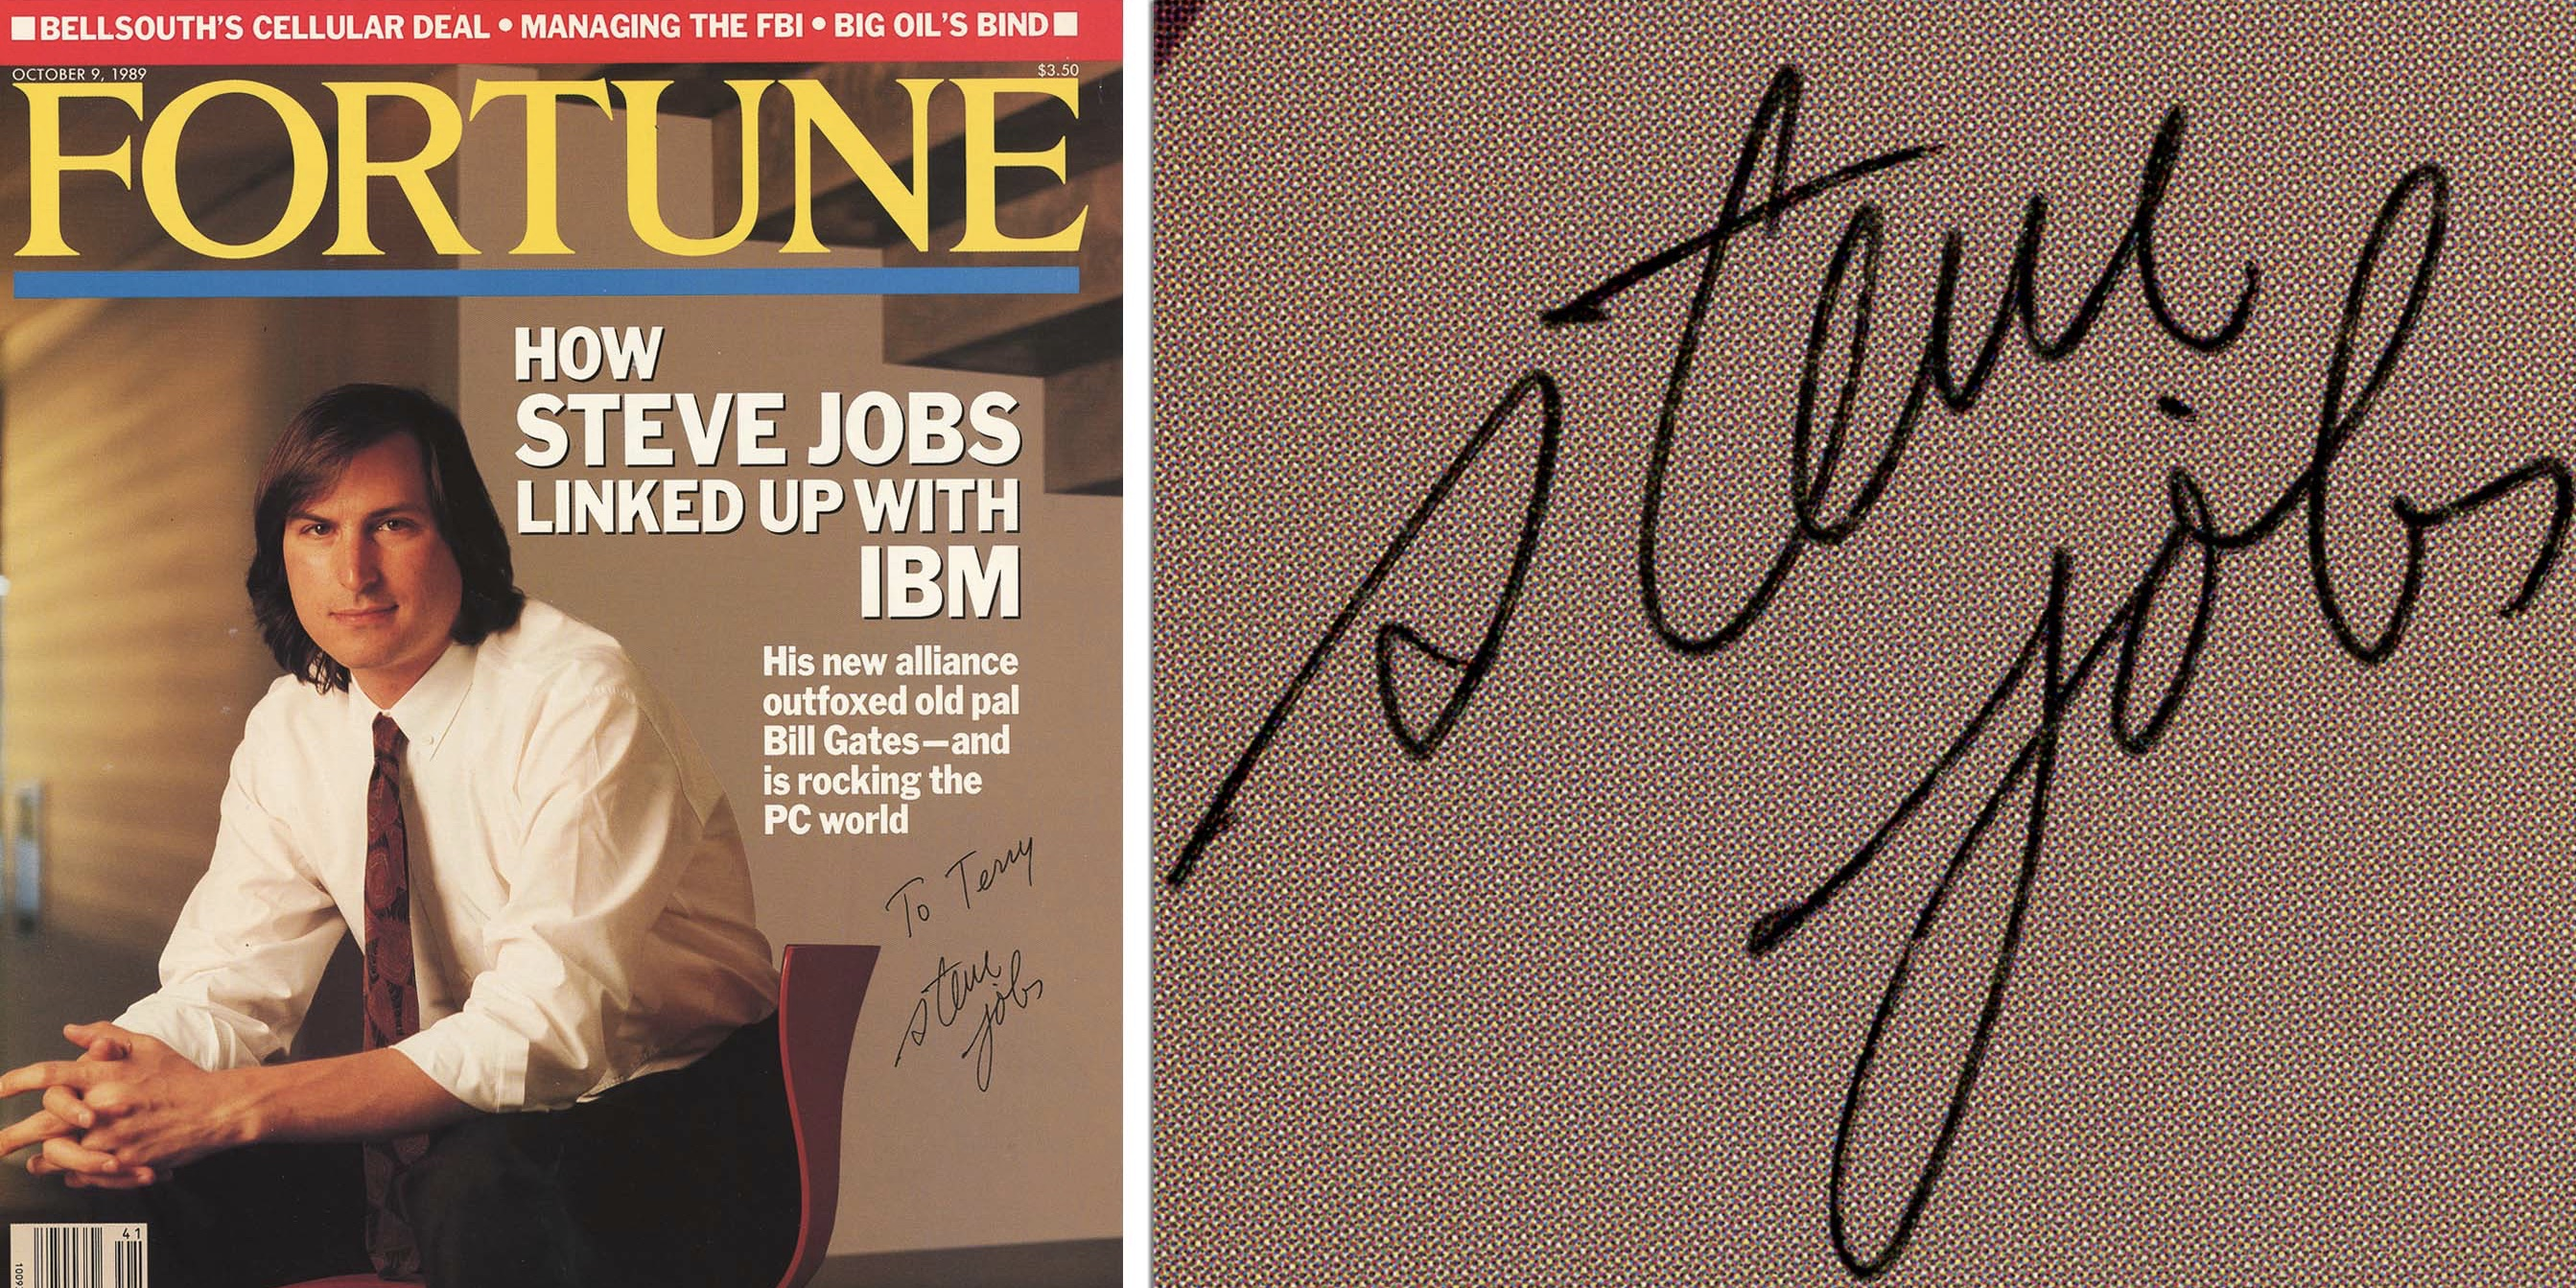 photo of [Update: Sold for $16k] Magazine autographed by Steve Jobs hits auction block with humorous backstory image